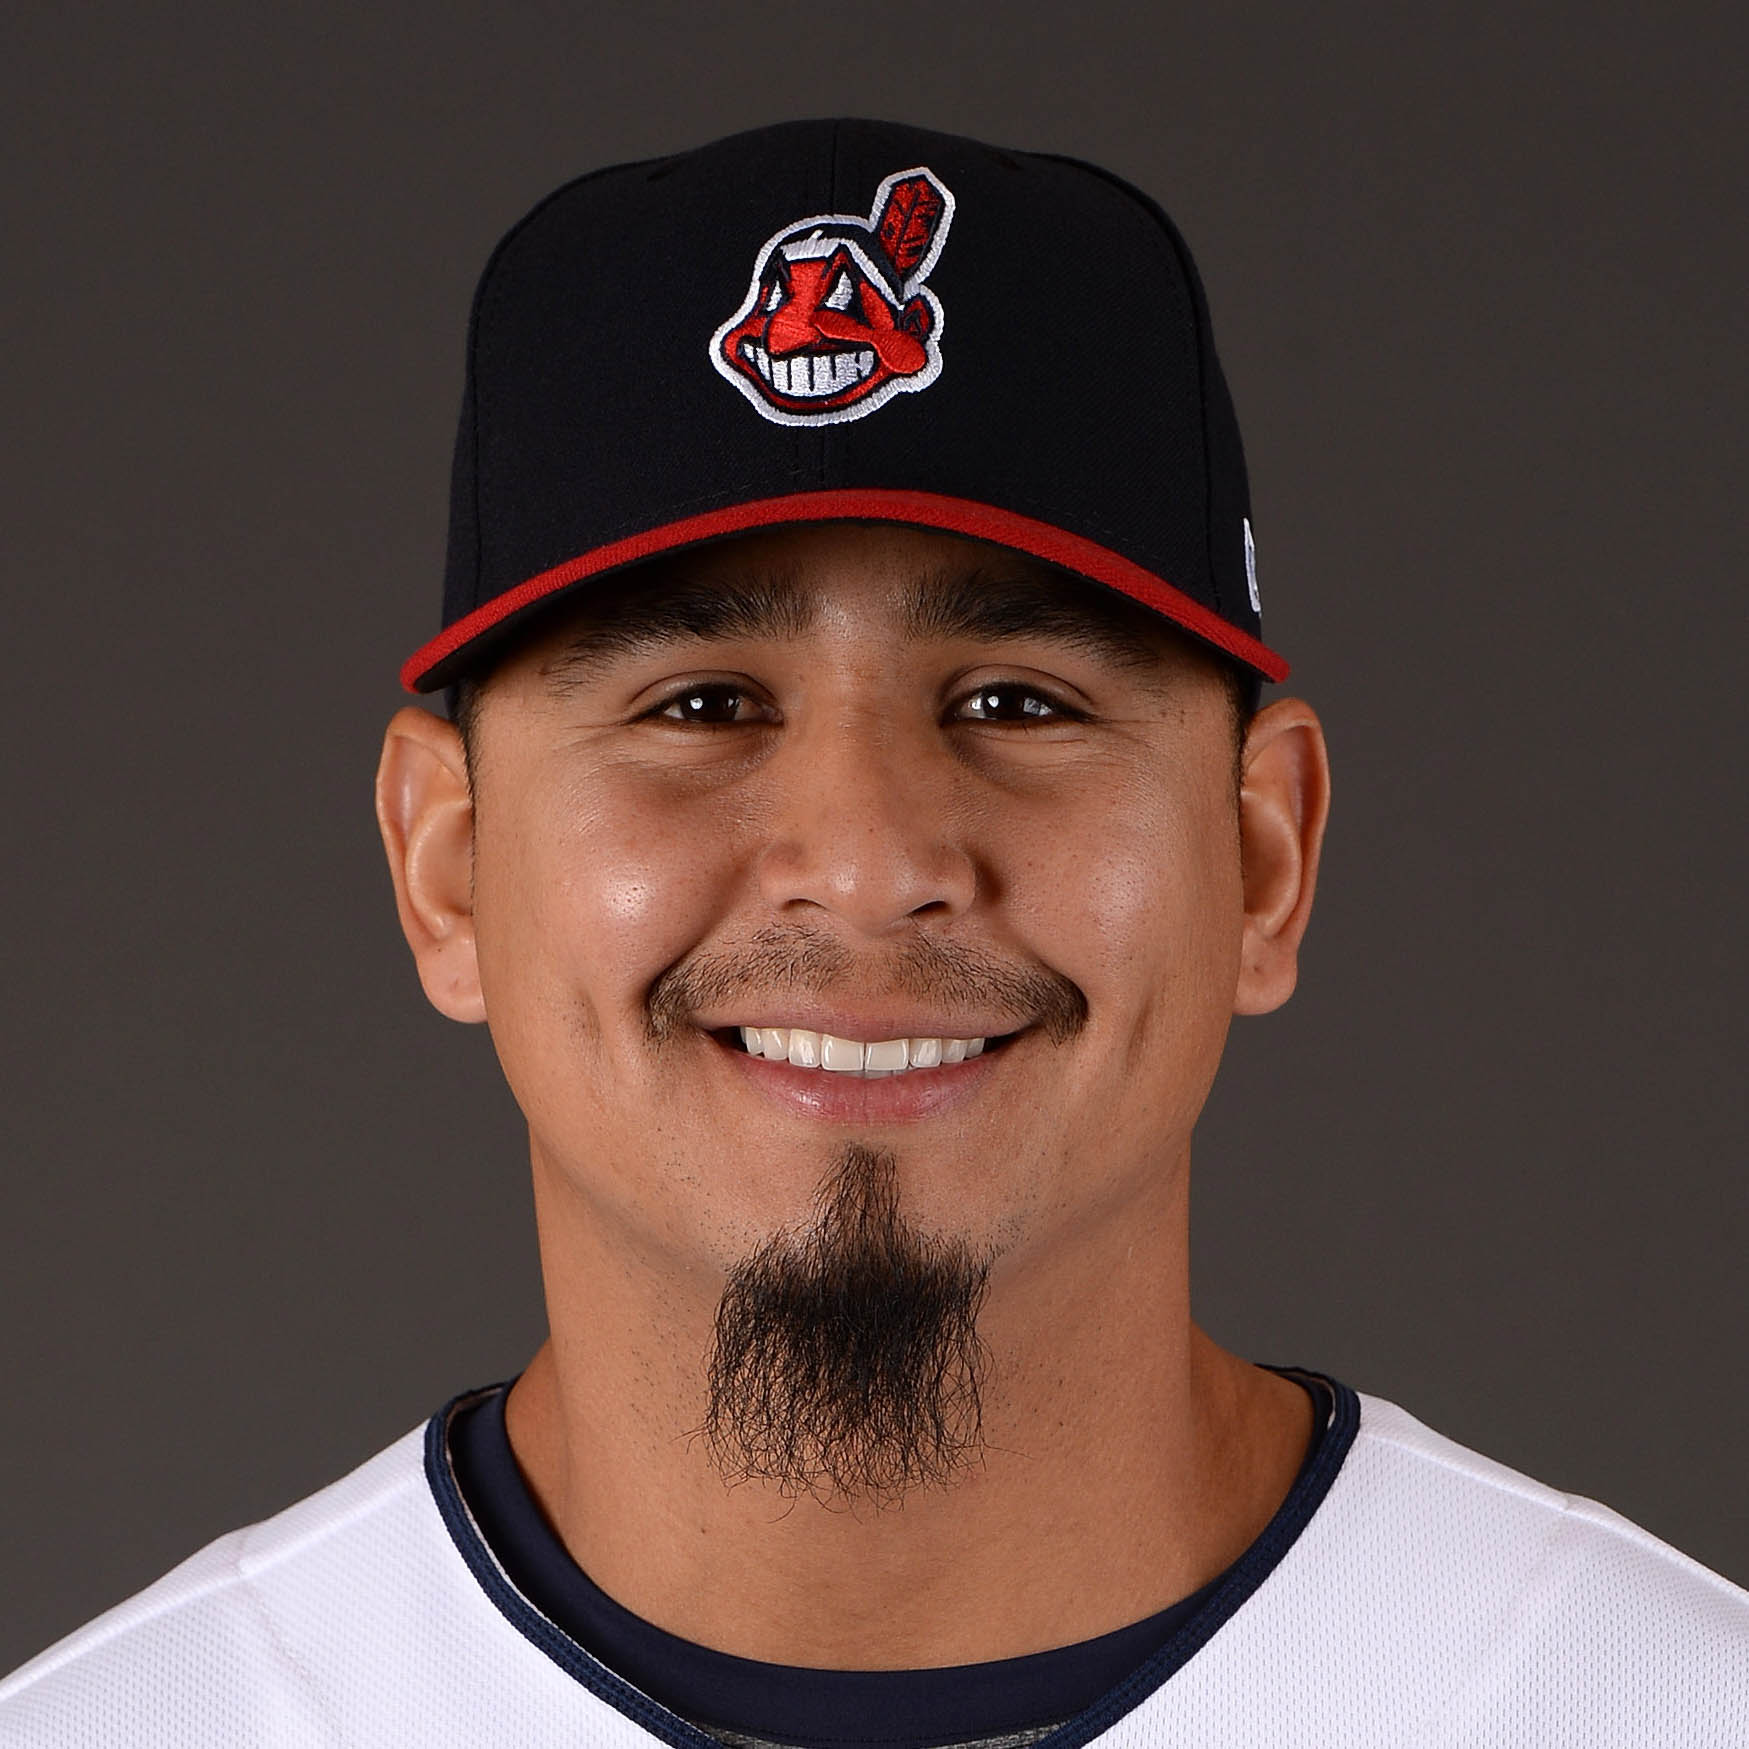 Carlos Carrasco Headshot